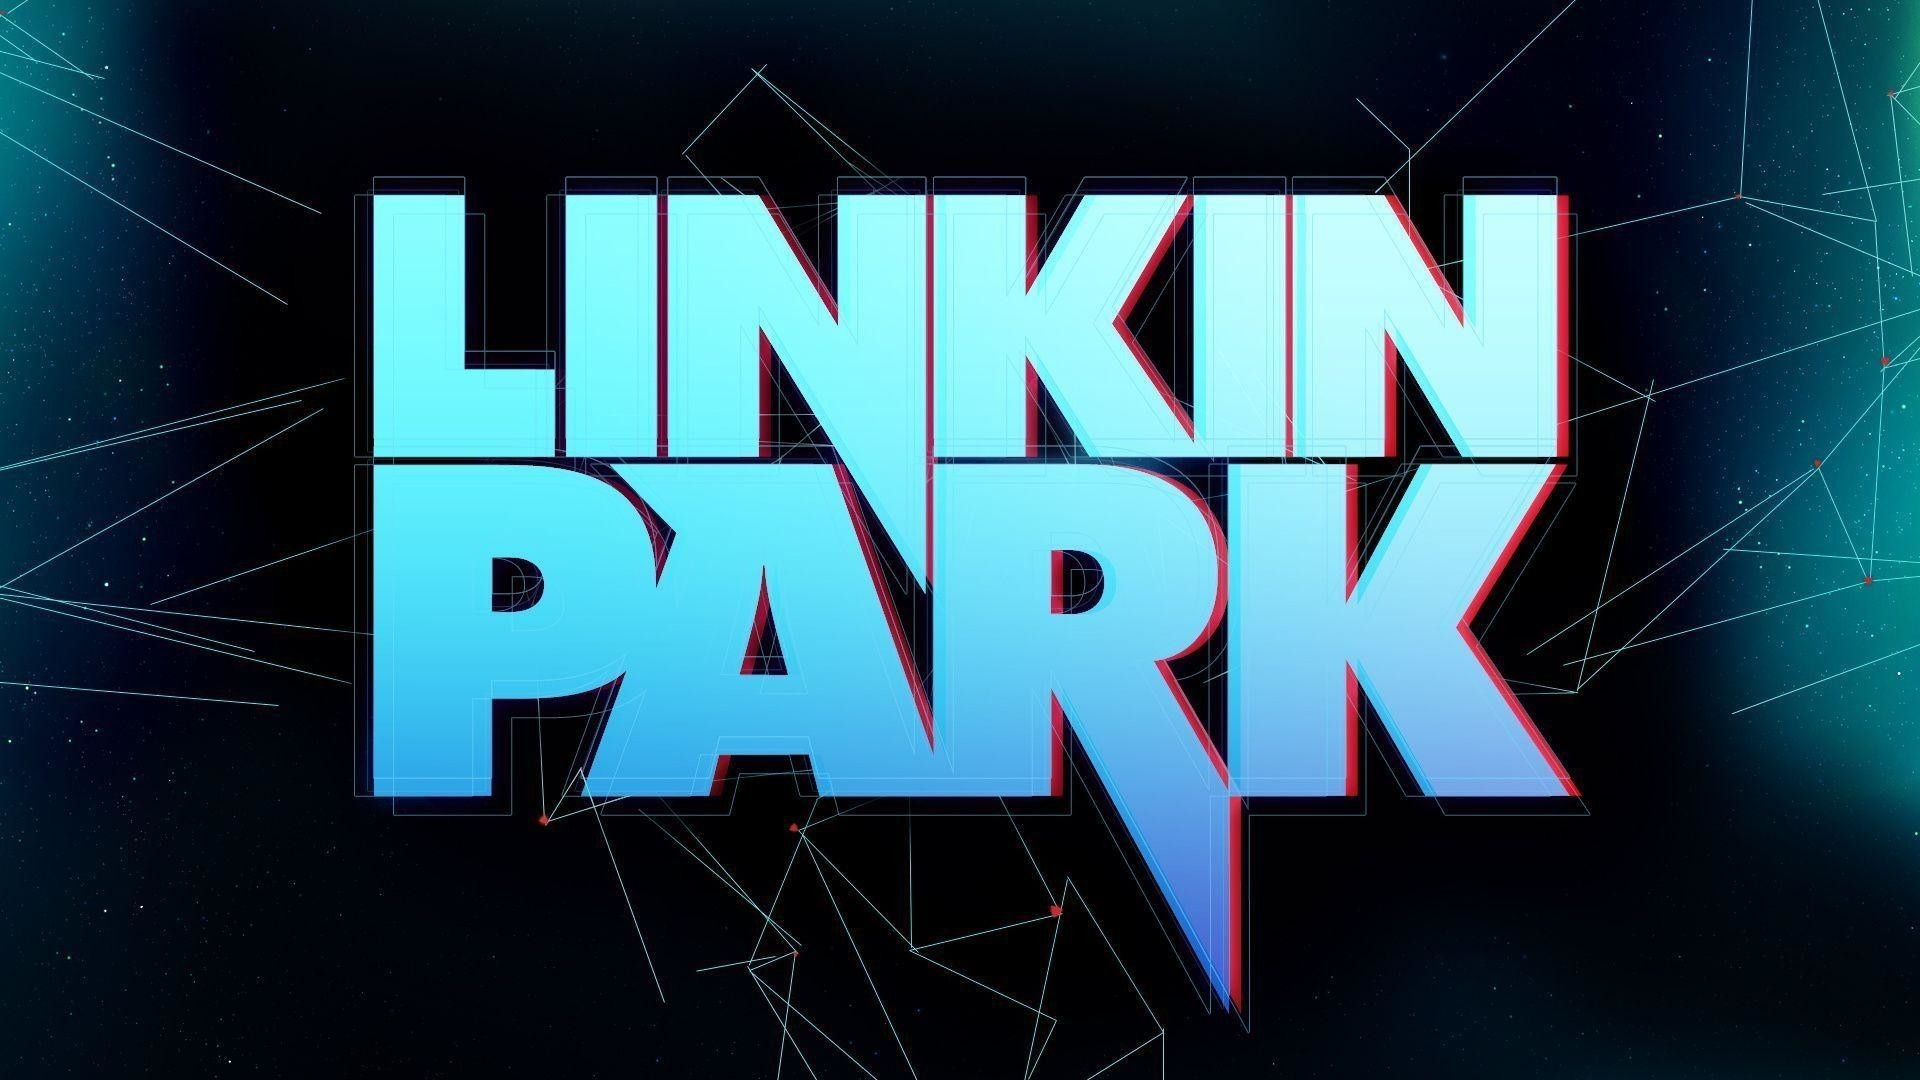 1920x1080  Linkin Park Wallpapers High Resolution and Quality Download